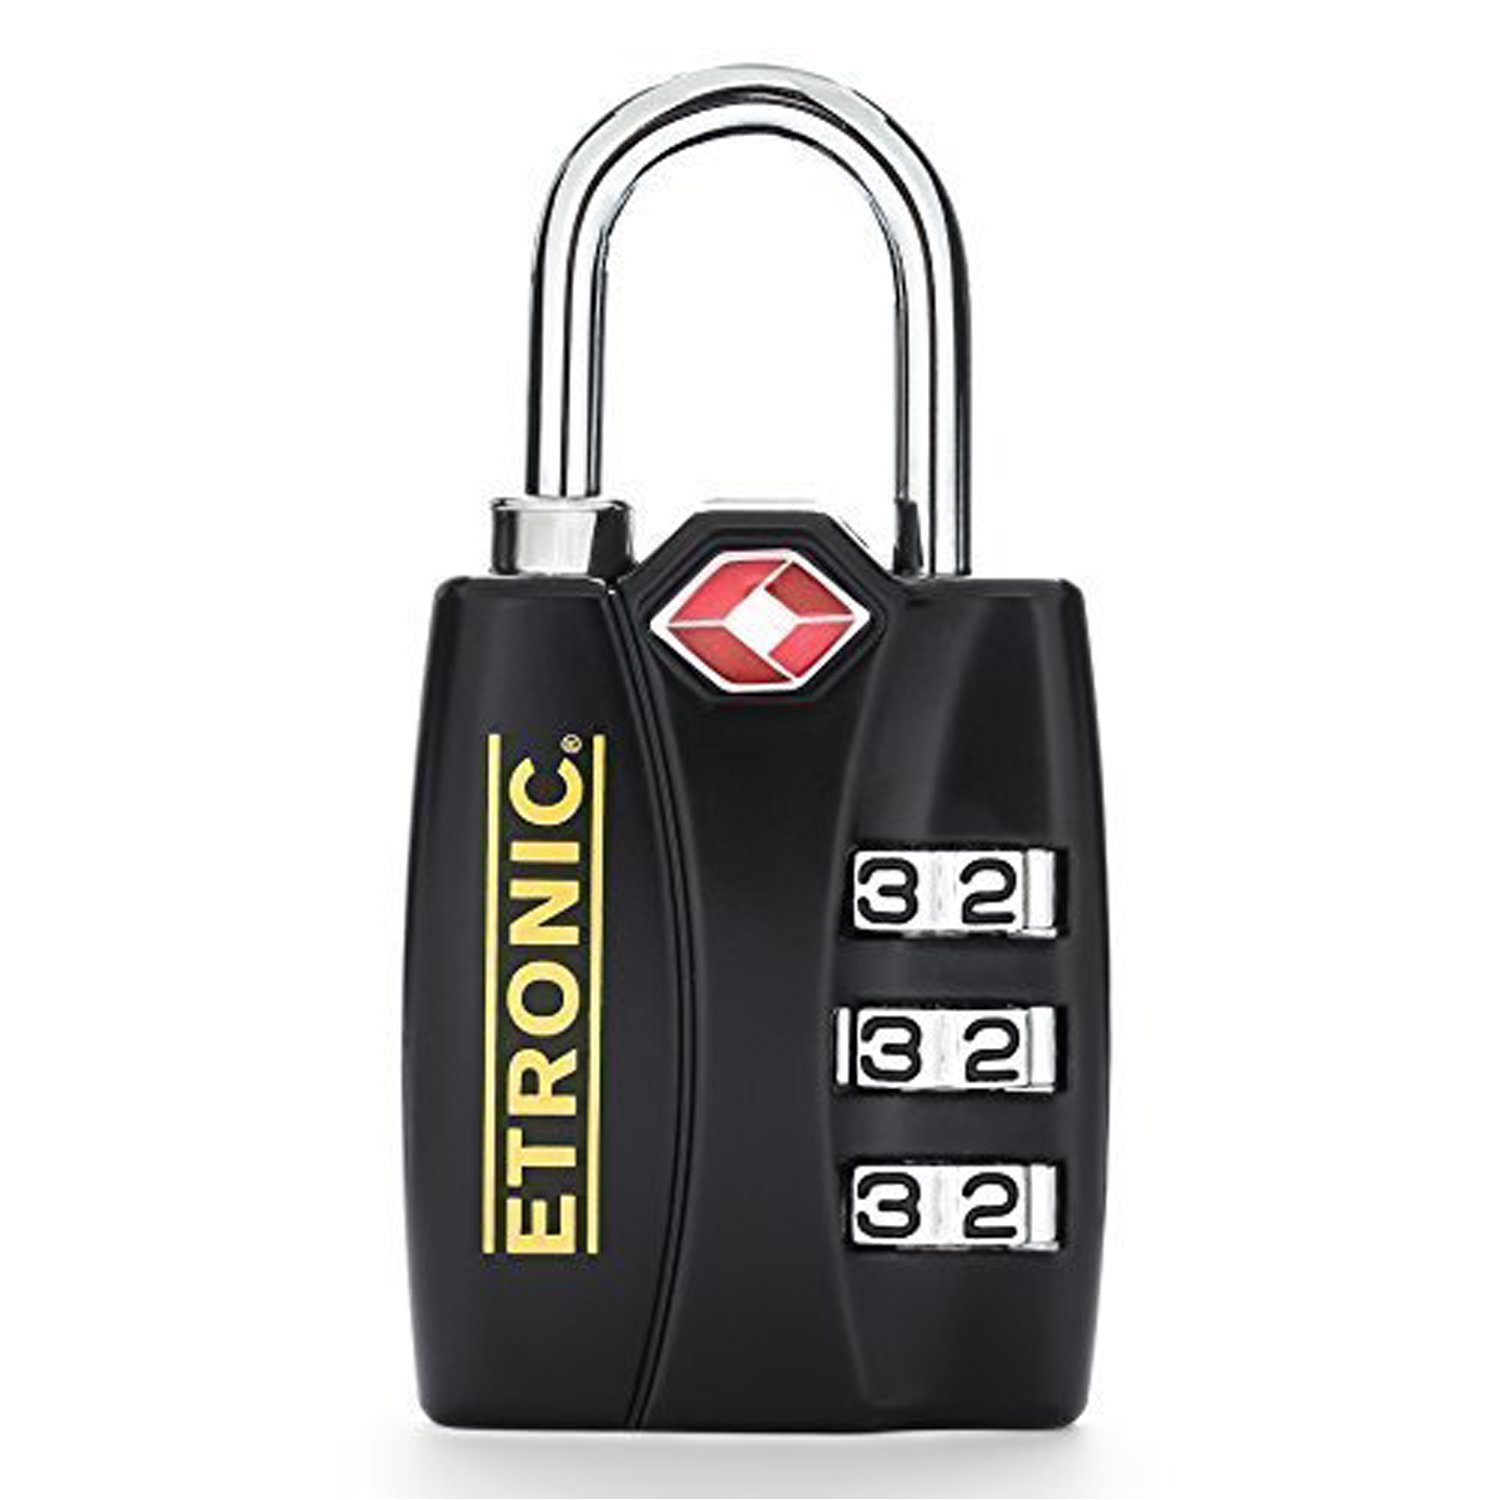 Etronic T6 TSA-Approved Lock TSA Open Alert Indicator Resettable Combination TSA-Accepted Luggage Lock, 1-3/16in (30mm) Wide